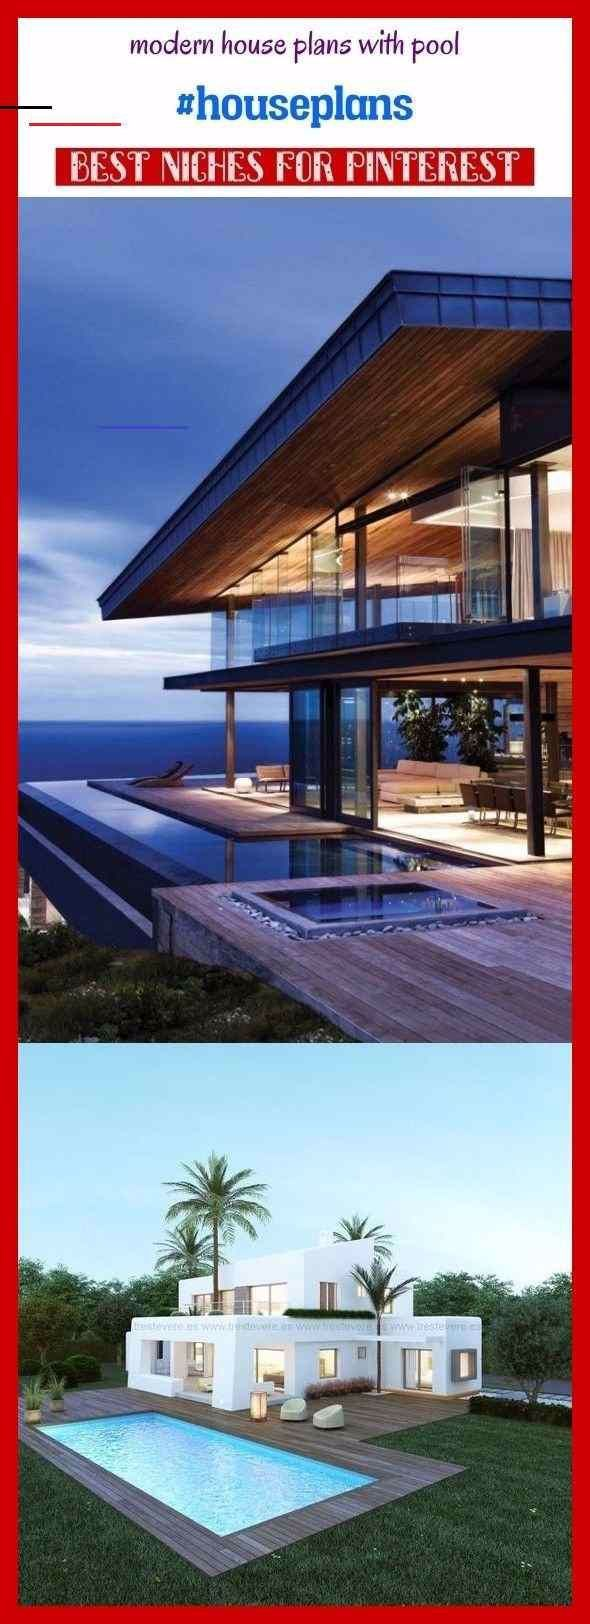 Photo of Modern house plans with pool #houseplans #seotips #seo #architecture. modern hou…